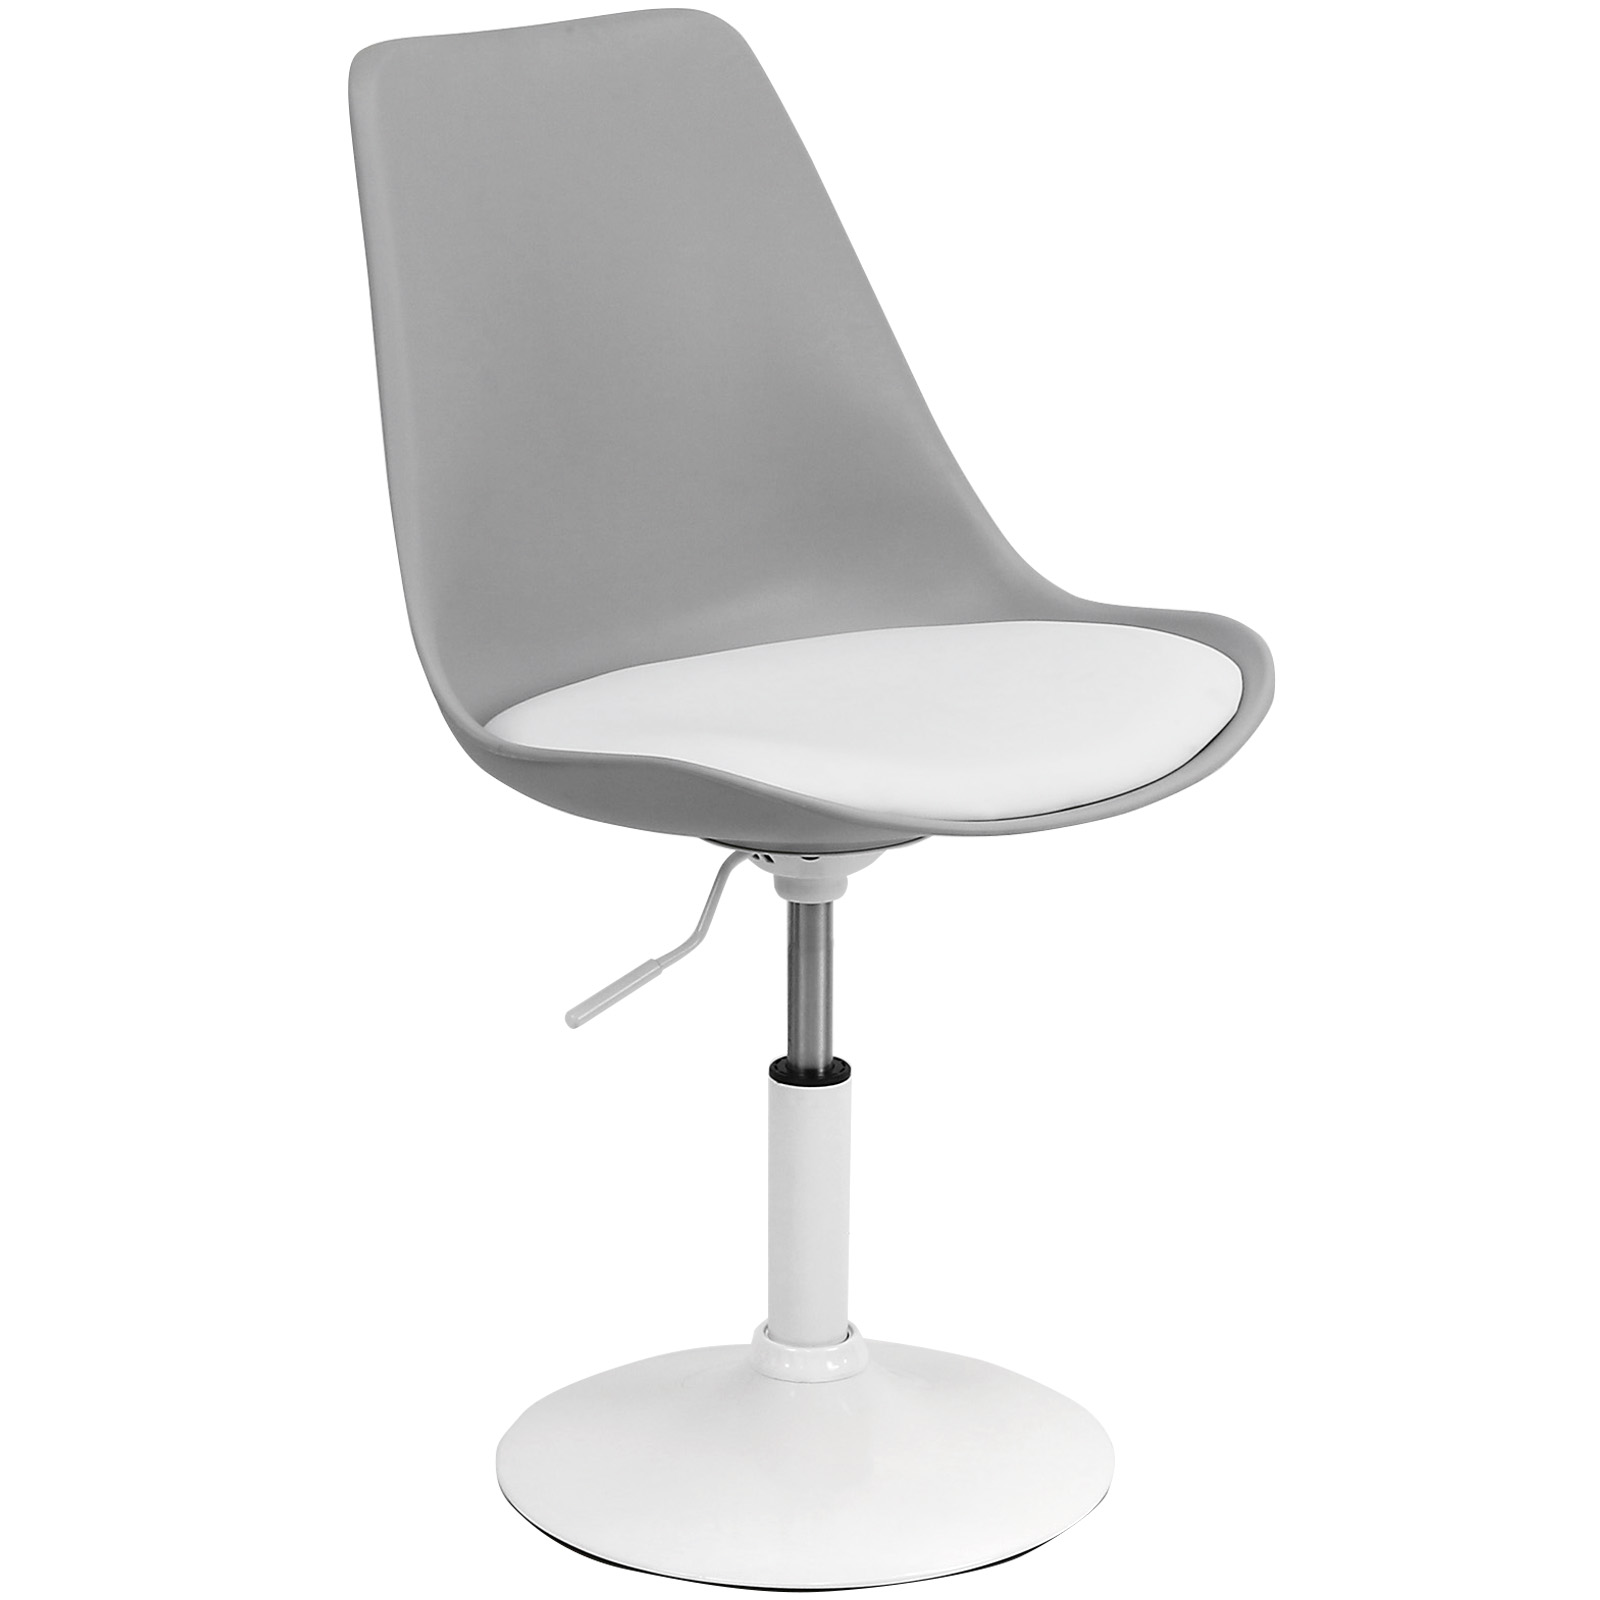 swivel office chair base globo stand hartleys white and grey seat tulip desk reception